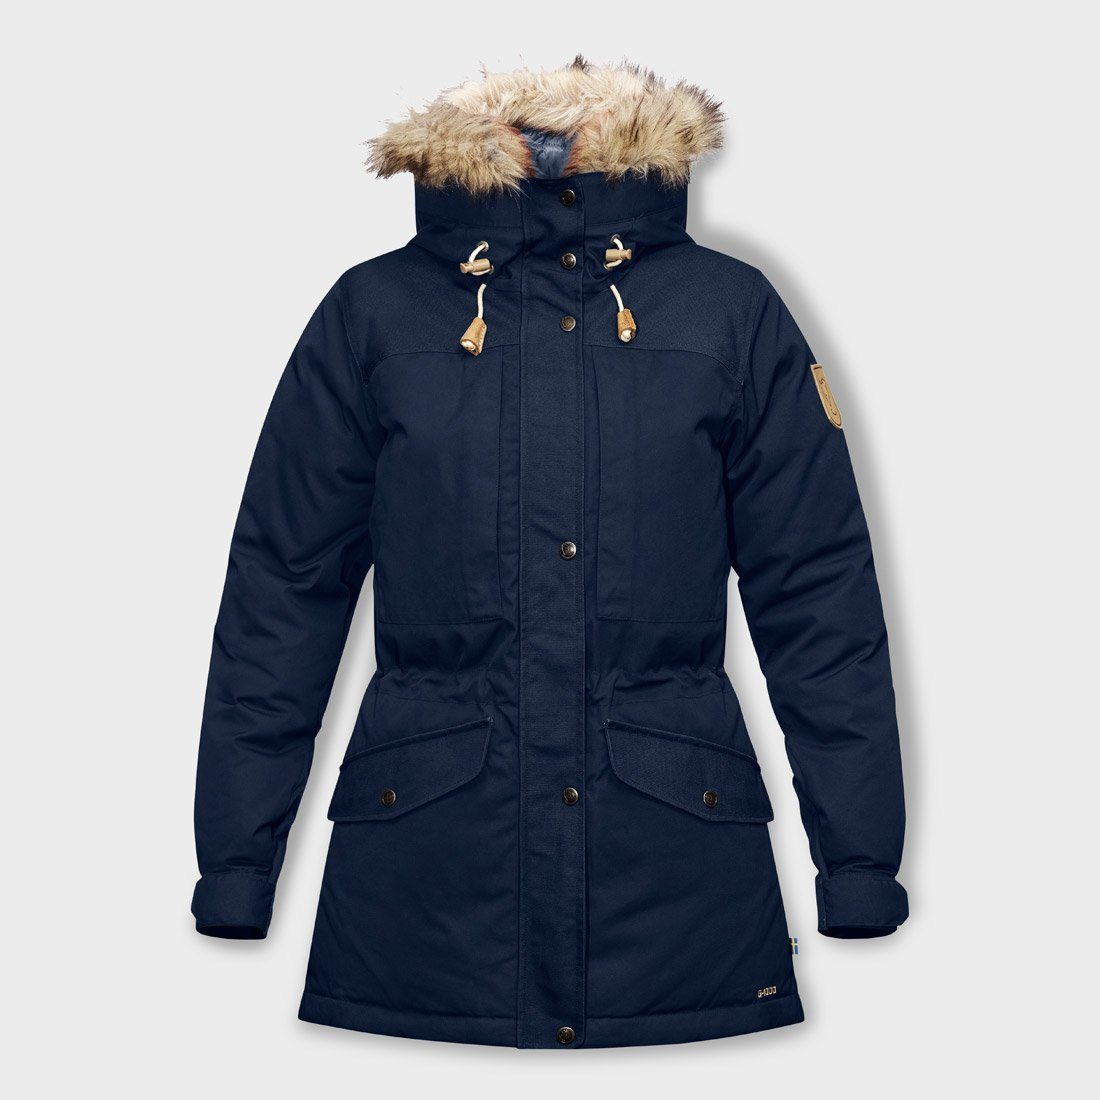 Fjallraven Women's Singi Down Jacket Dark Navy